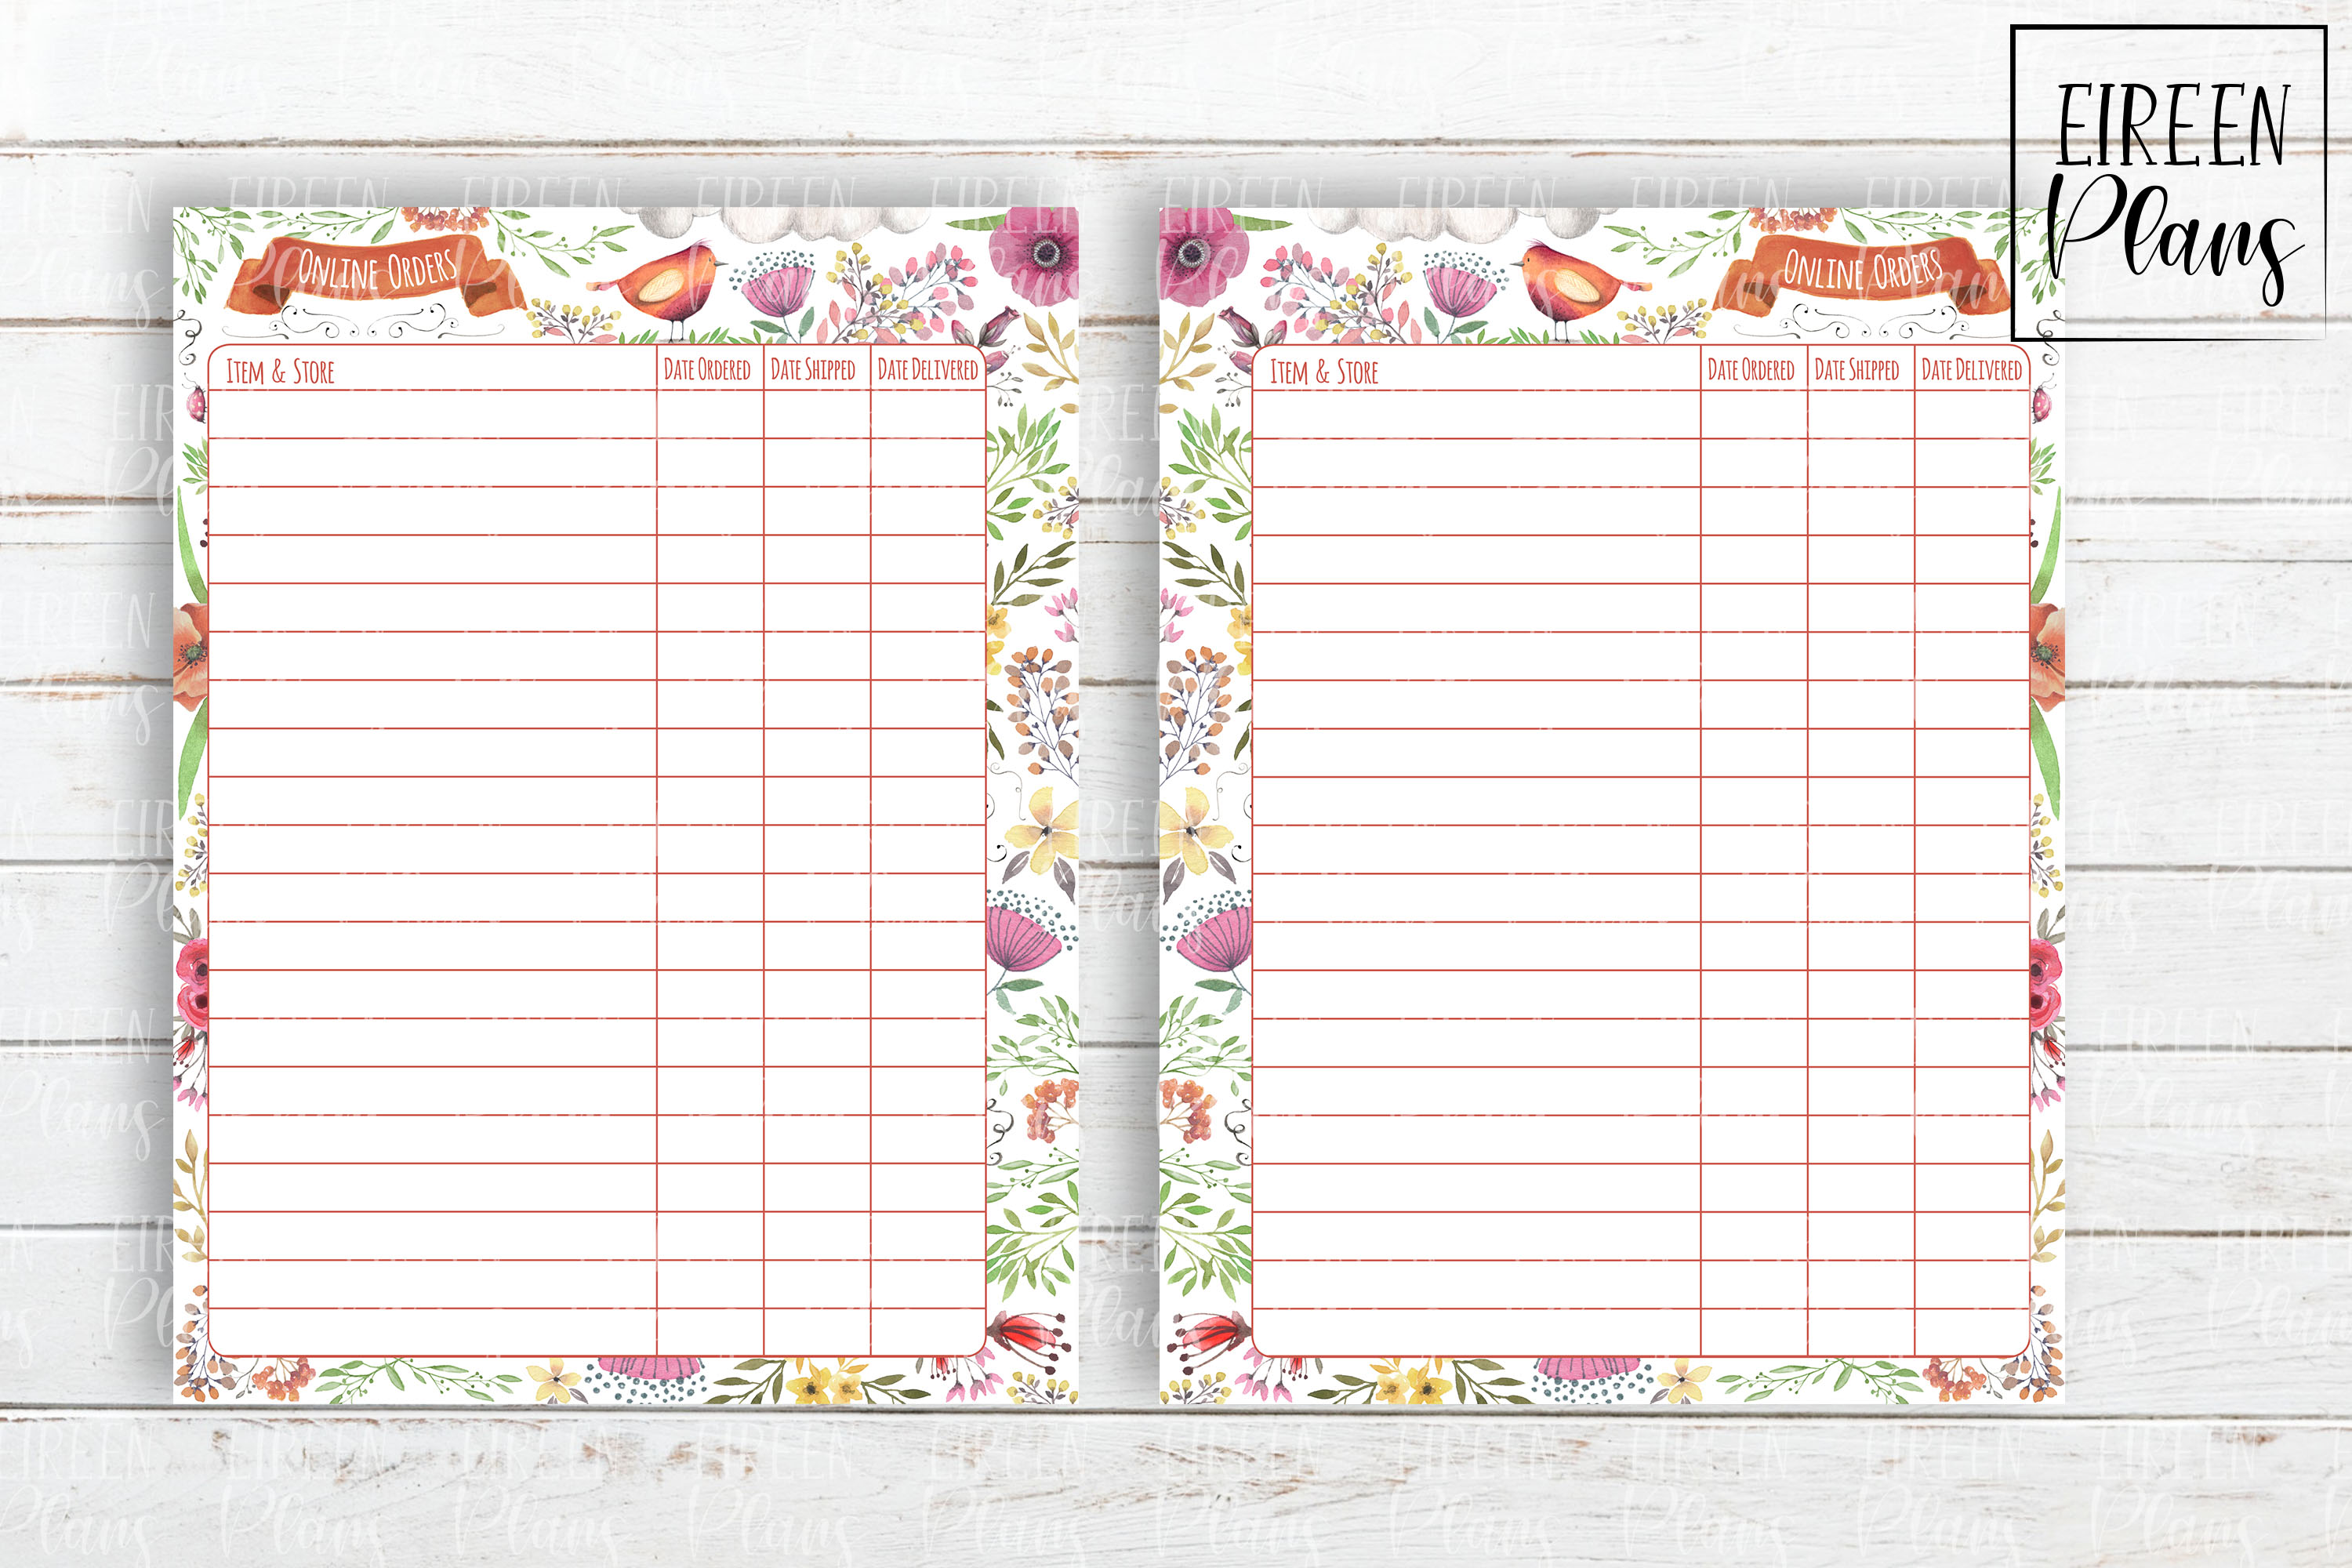 Onilne Orders Tracker for Classic Happy Planner example image 2